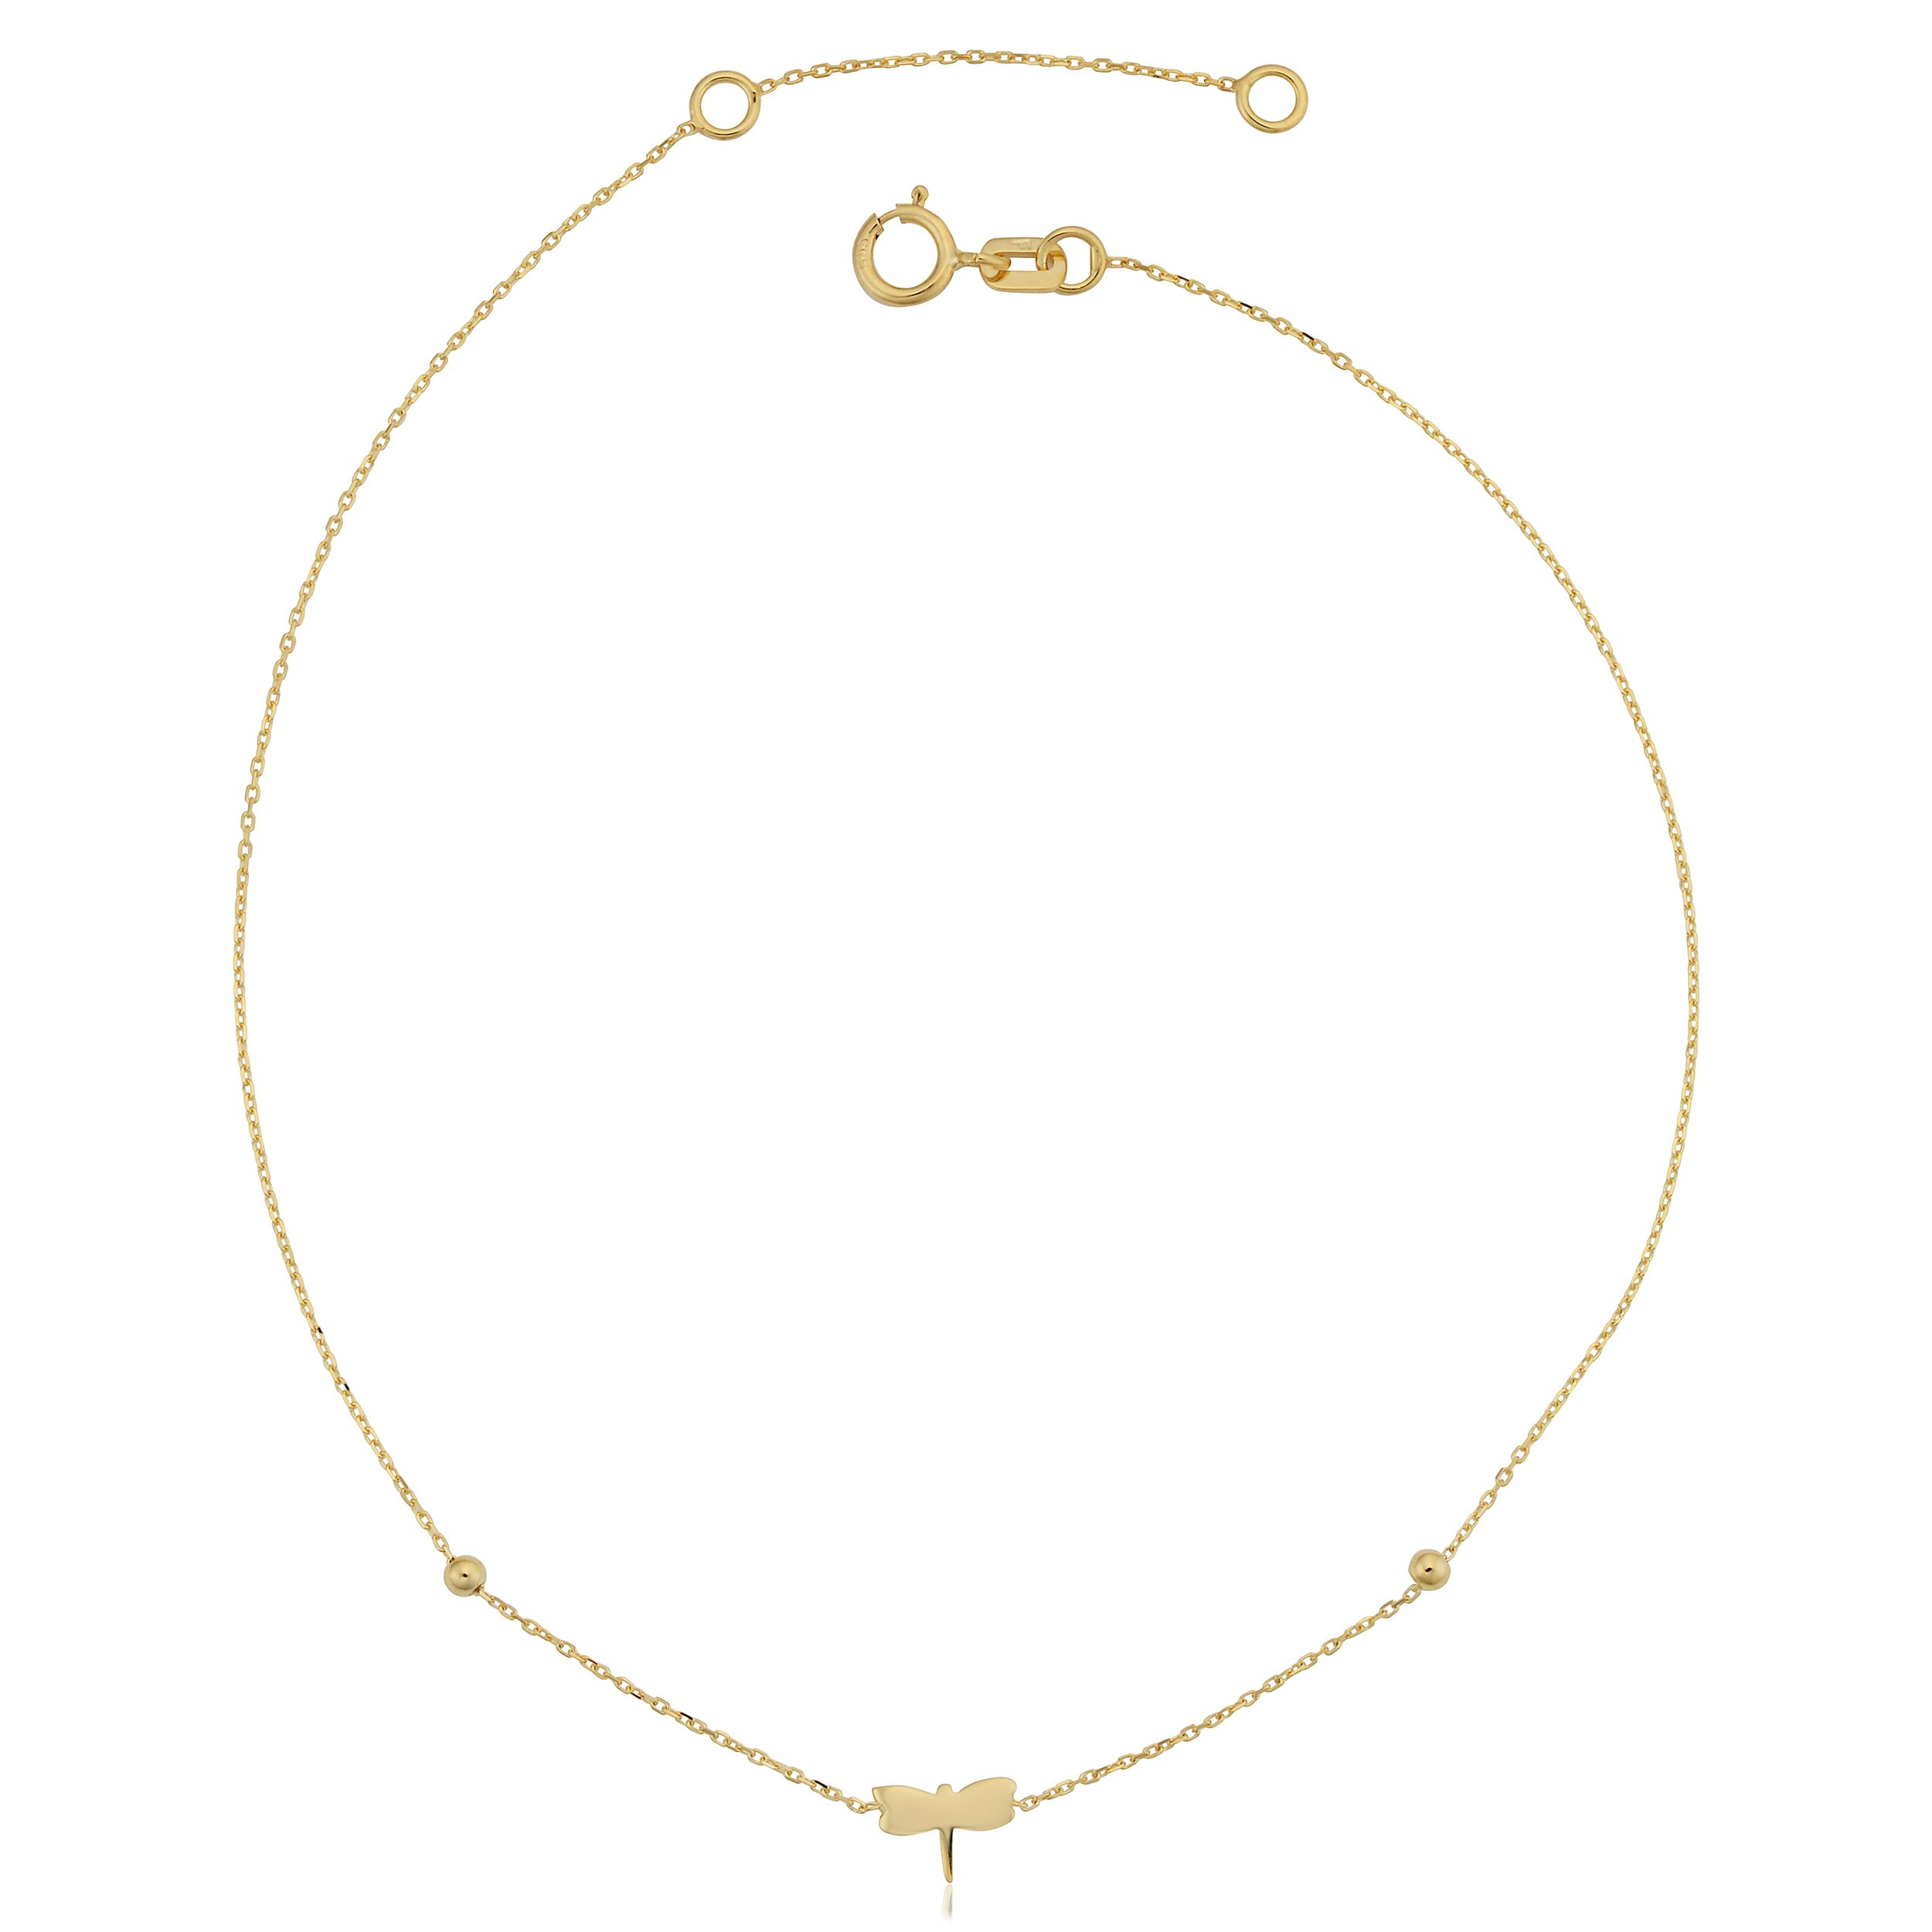 14k Yellow Gold Dragonfly Adjustable Length Anklet (fits 9'' or 10'')